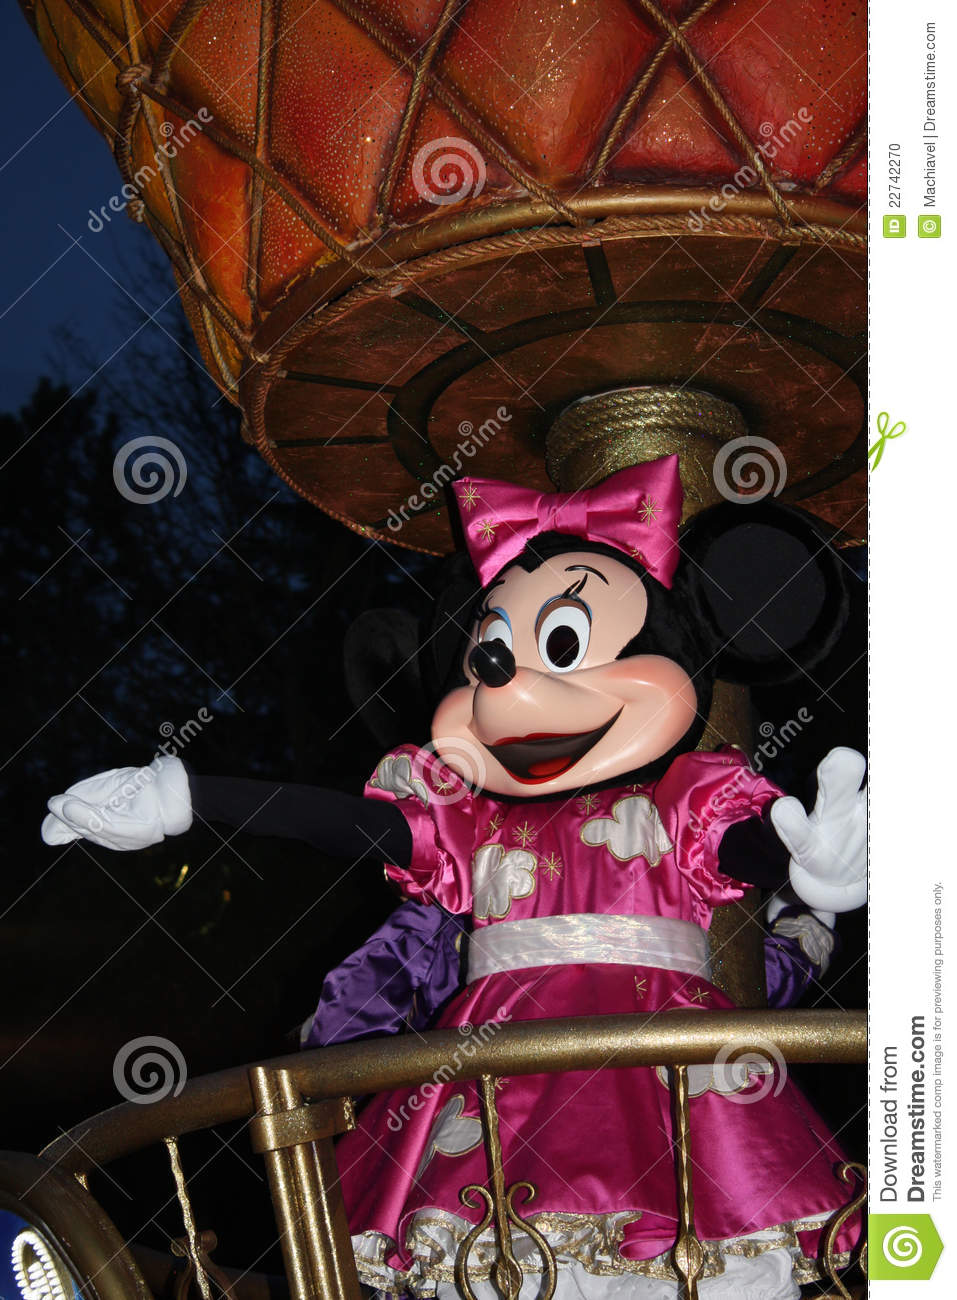 Disneyland paris parade at night editorial image